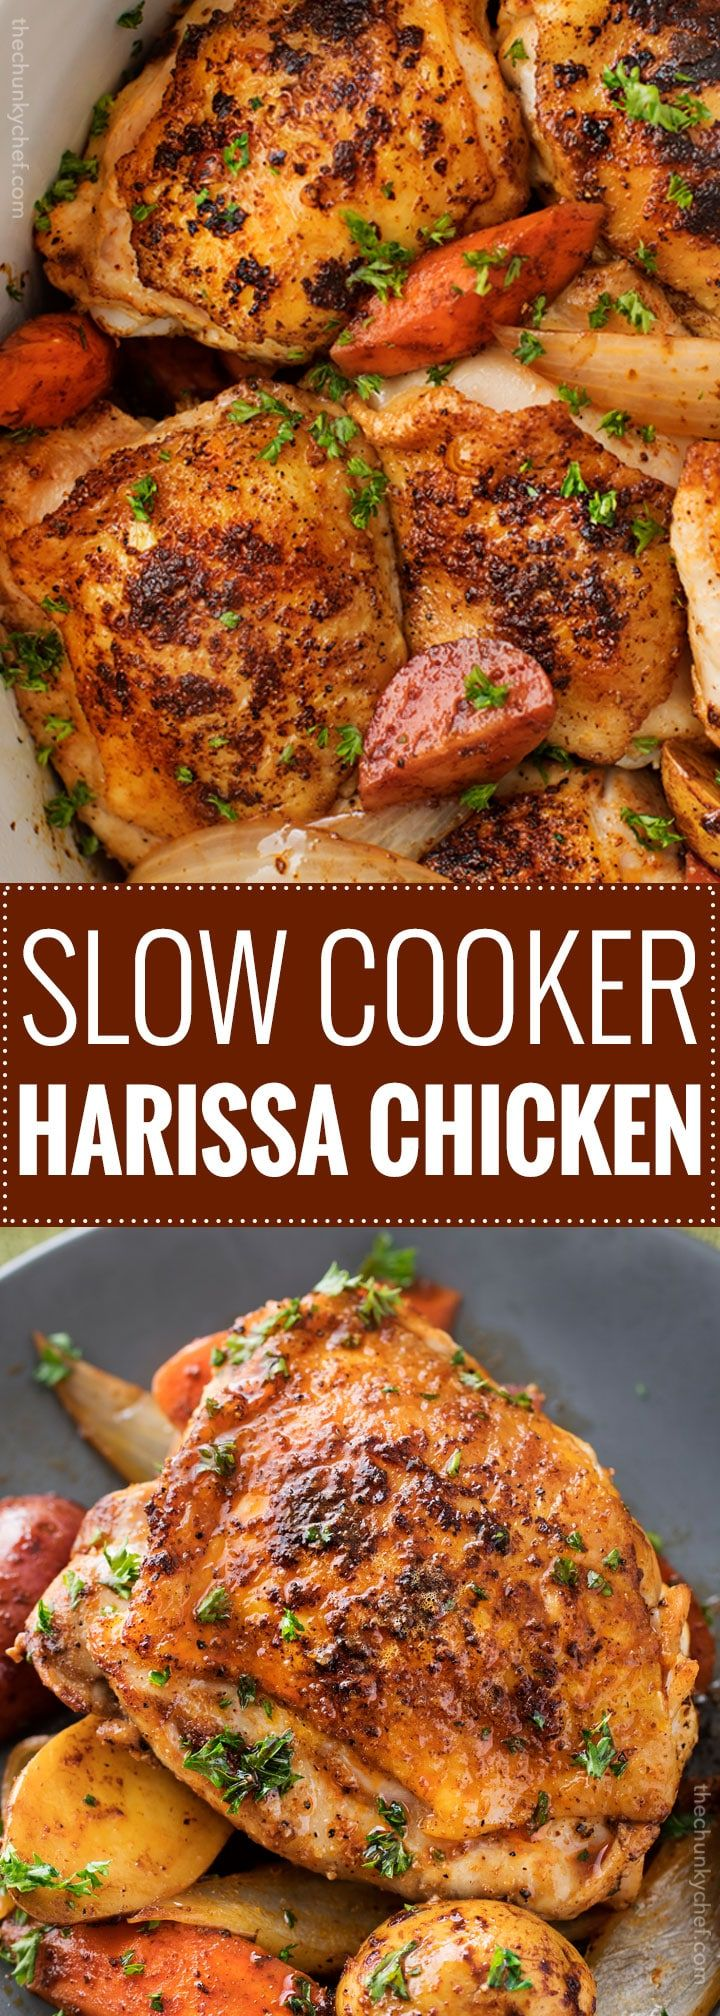 This slow cooker Harissa chicken is absolutely brimming with bold, spicy flavors! Chicken thighs, potatoes, carrots, and onion are slathered in a rich spice mix and then made easily in the crockpot!   #slowcooker #crockpot #chickenrecipes #harissa #weeknightmeal